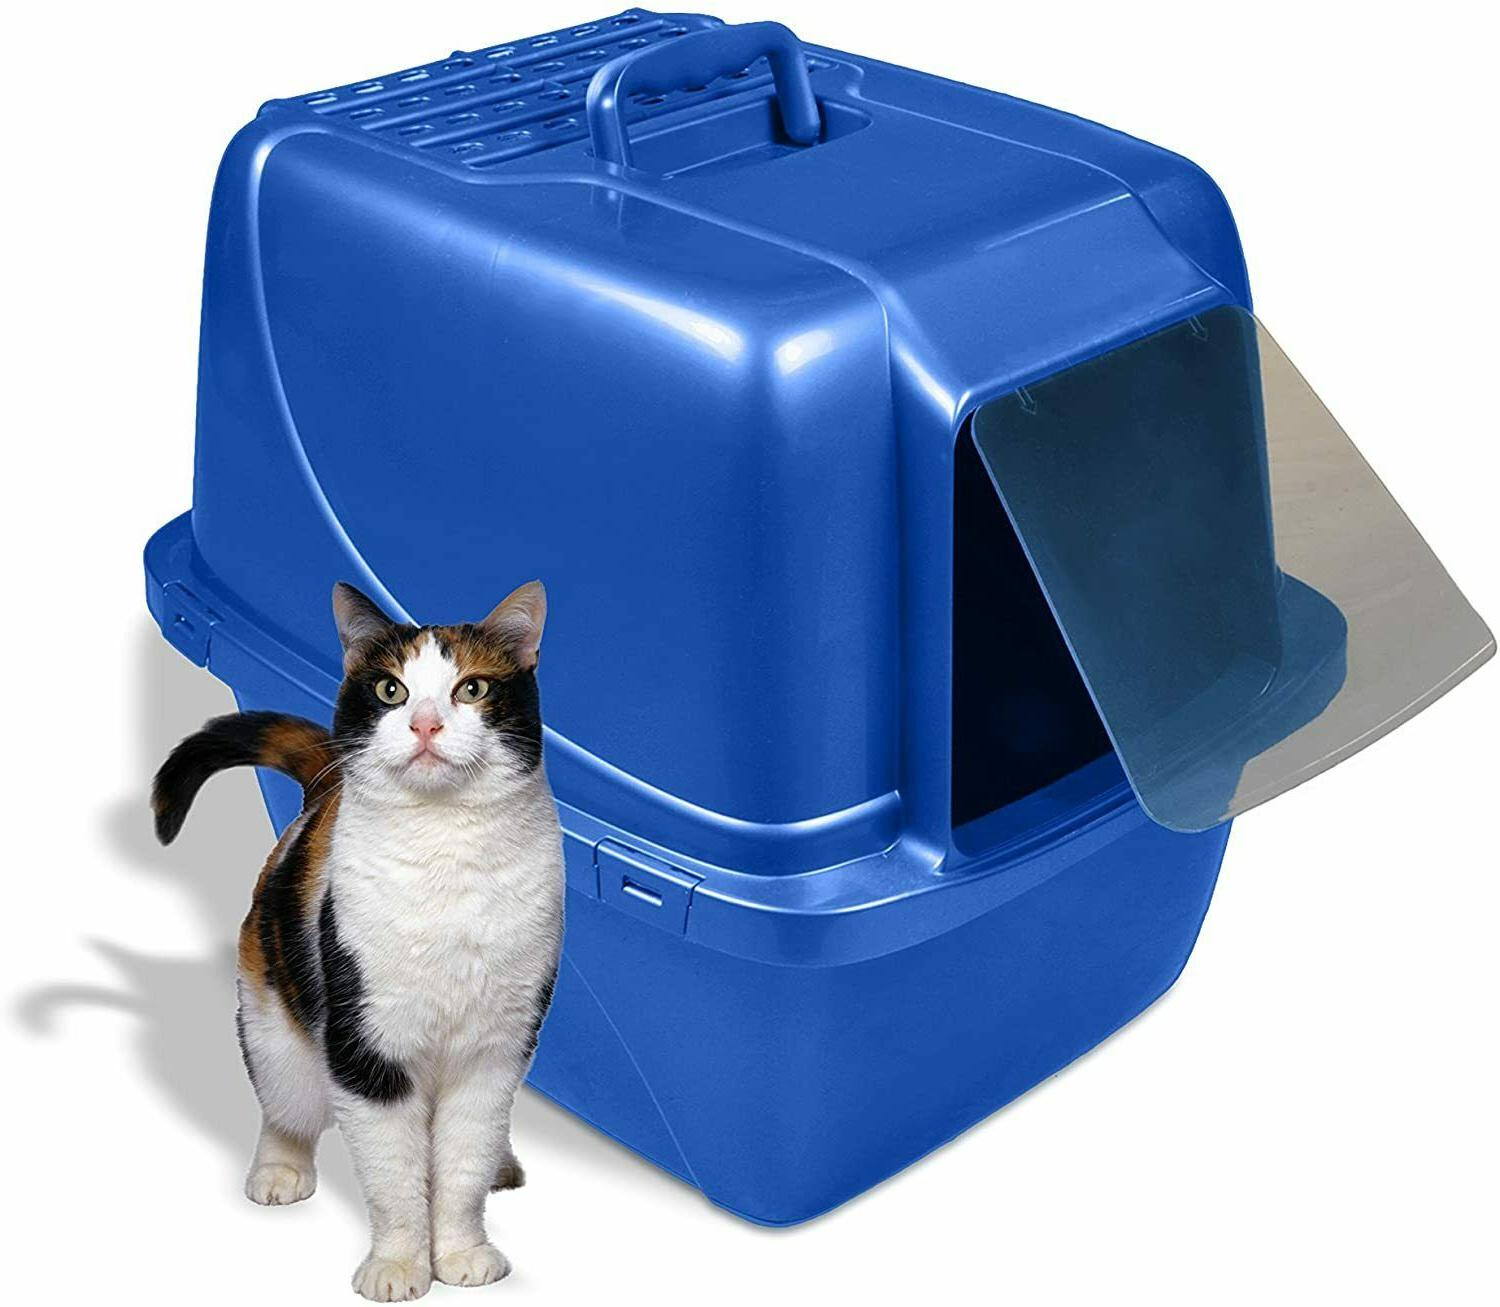 Extra Cat Litter Box Enclosed Jumbo